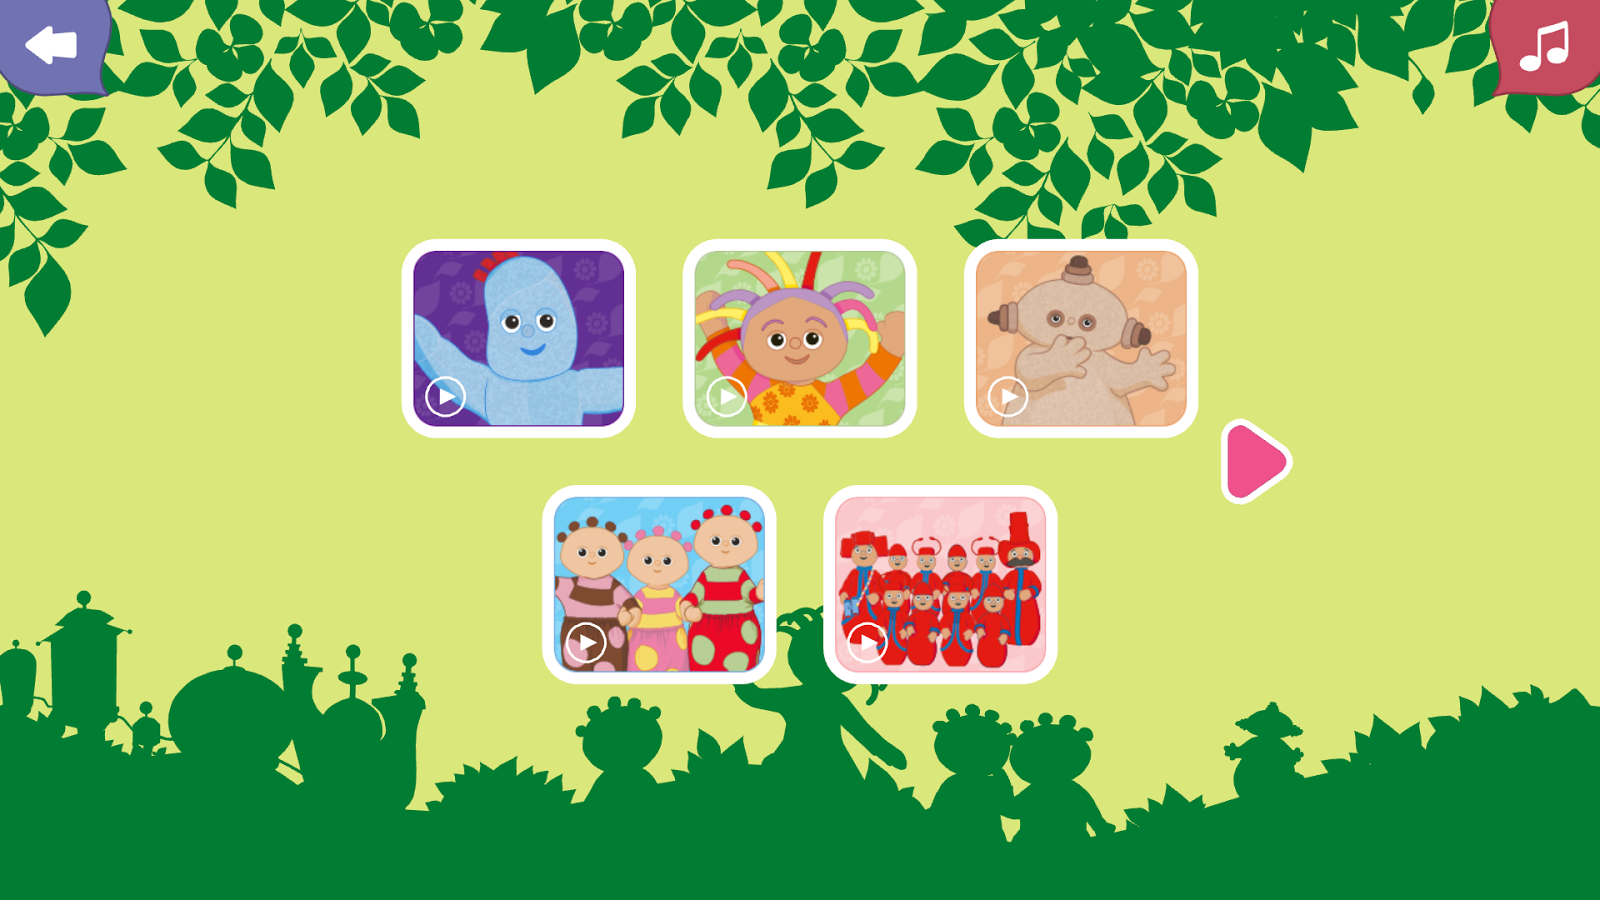 In The Night Garden Web App Android Apps on Google Play